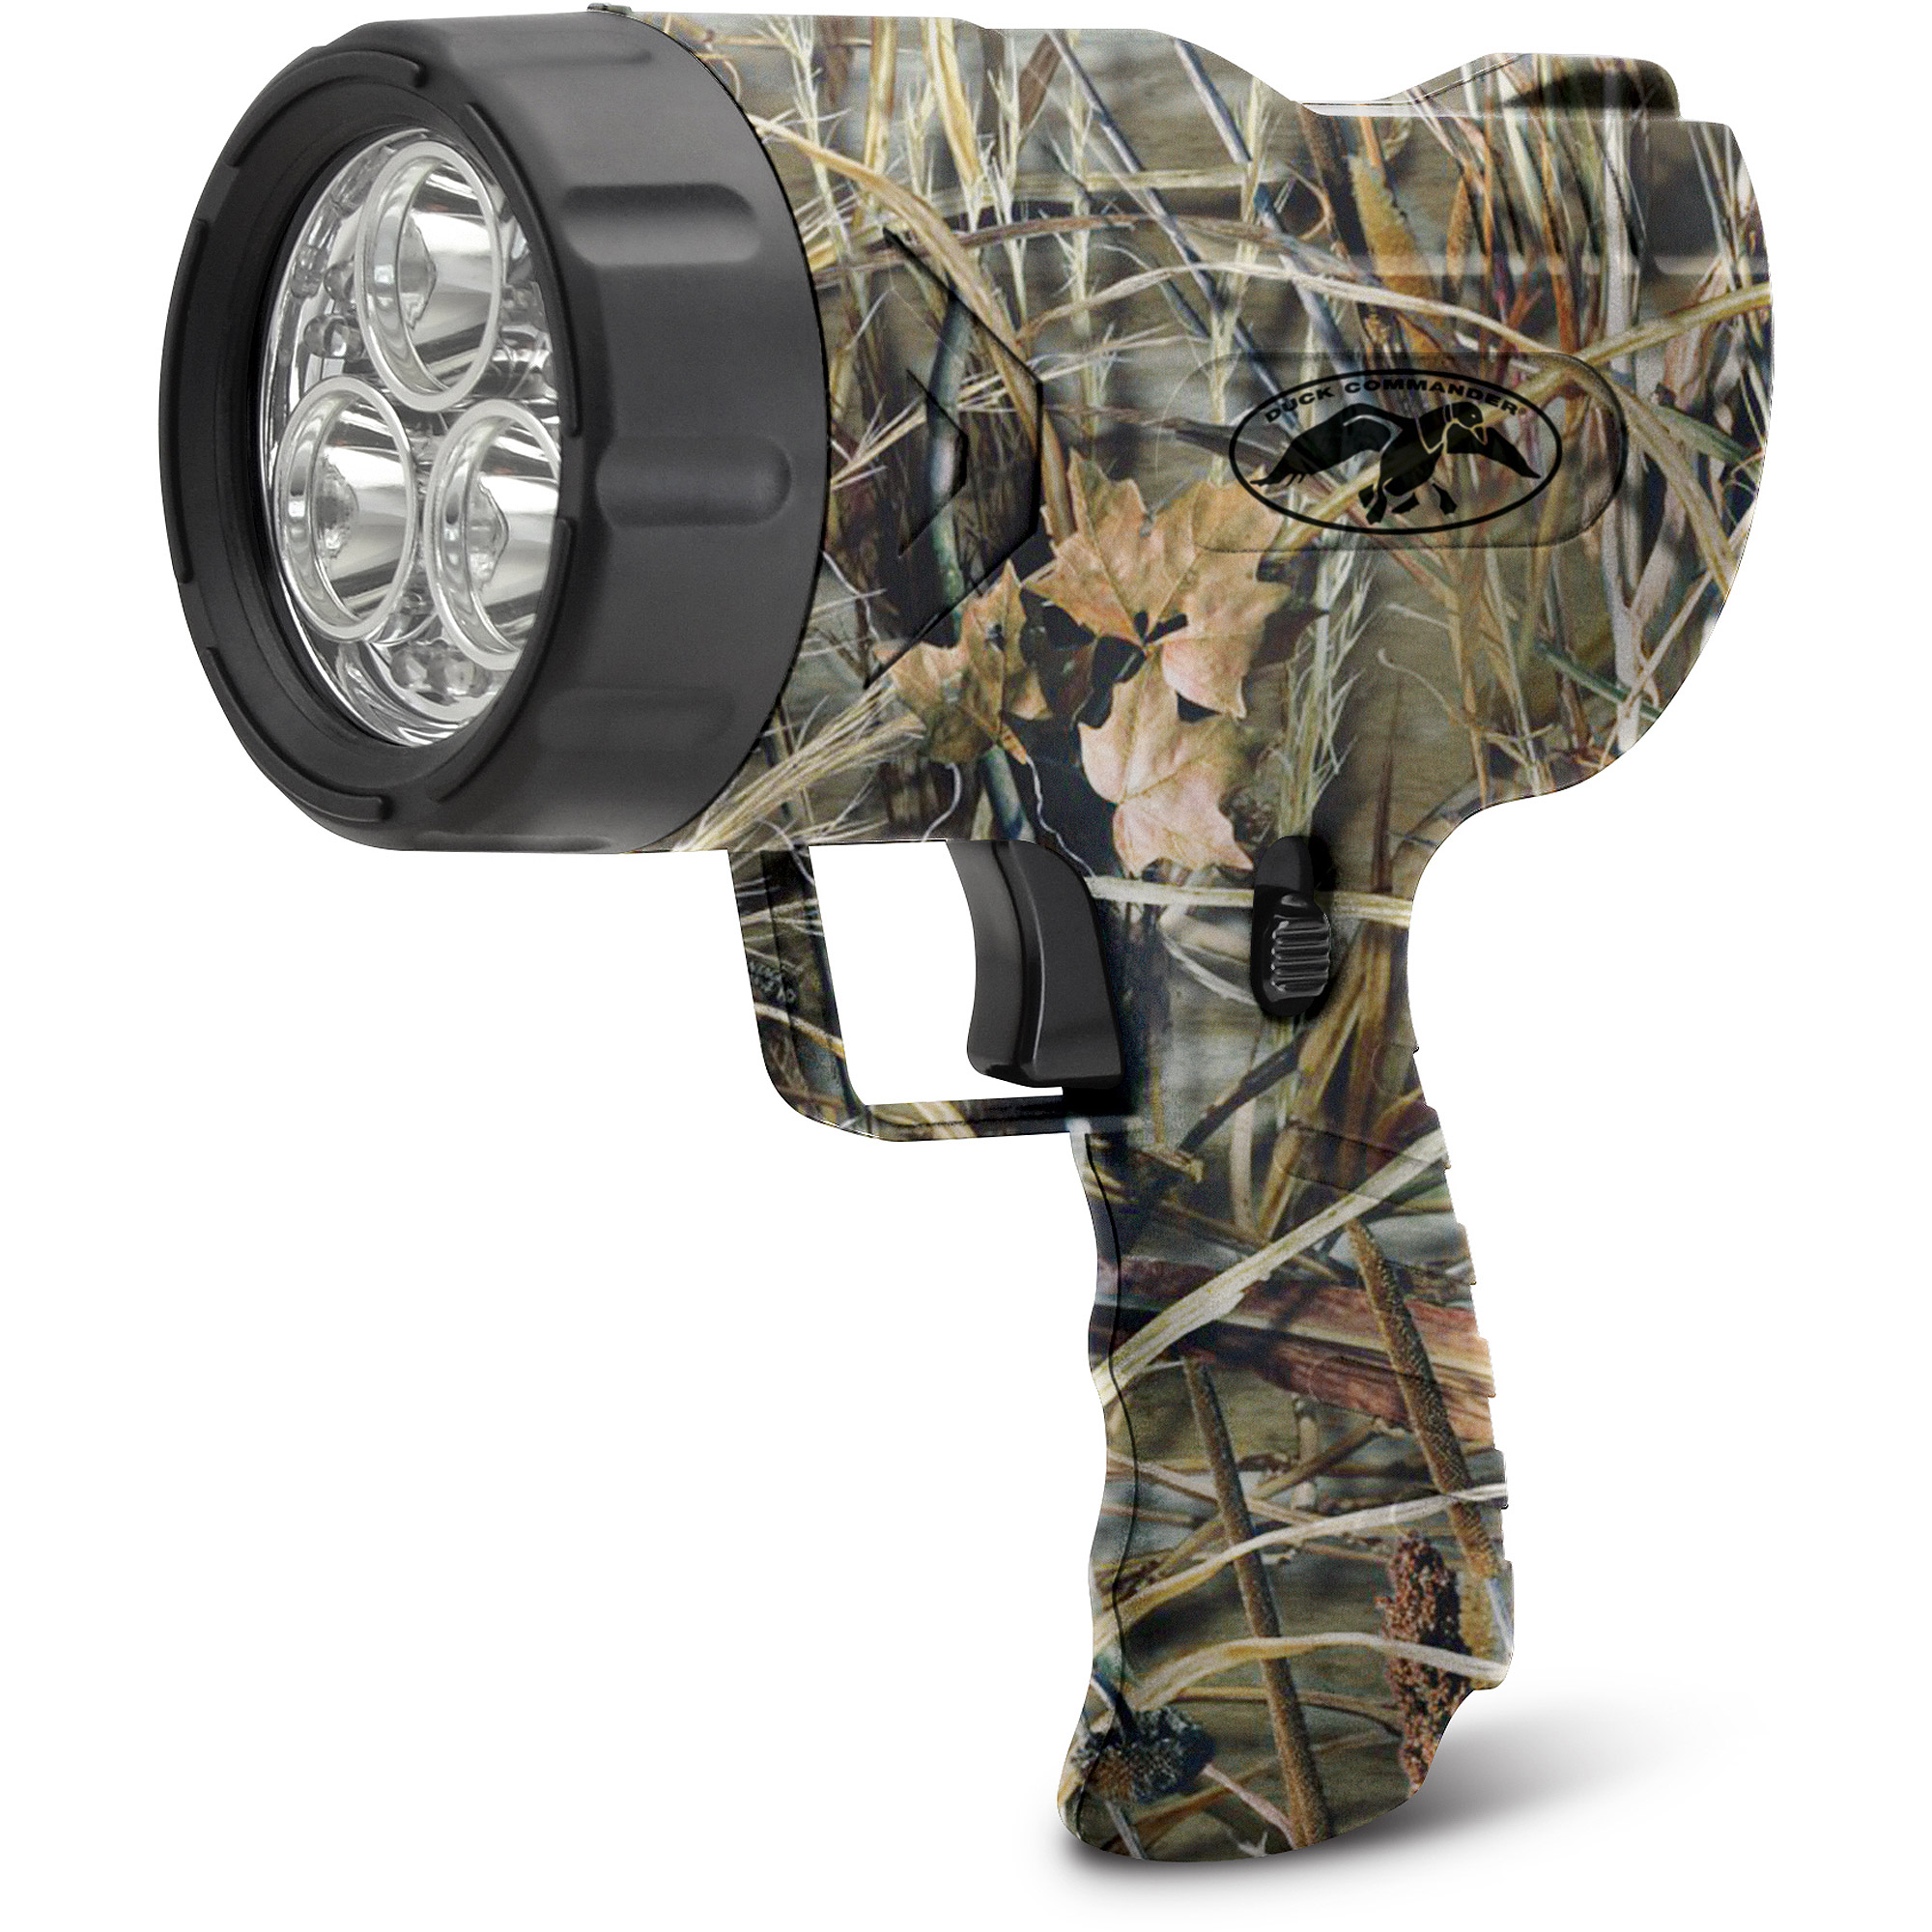 Duck Commander 9WS Hand Held Spotlight in Max4, Camo